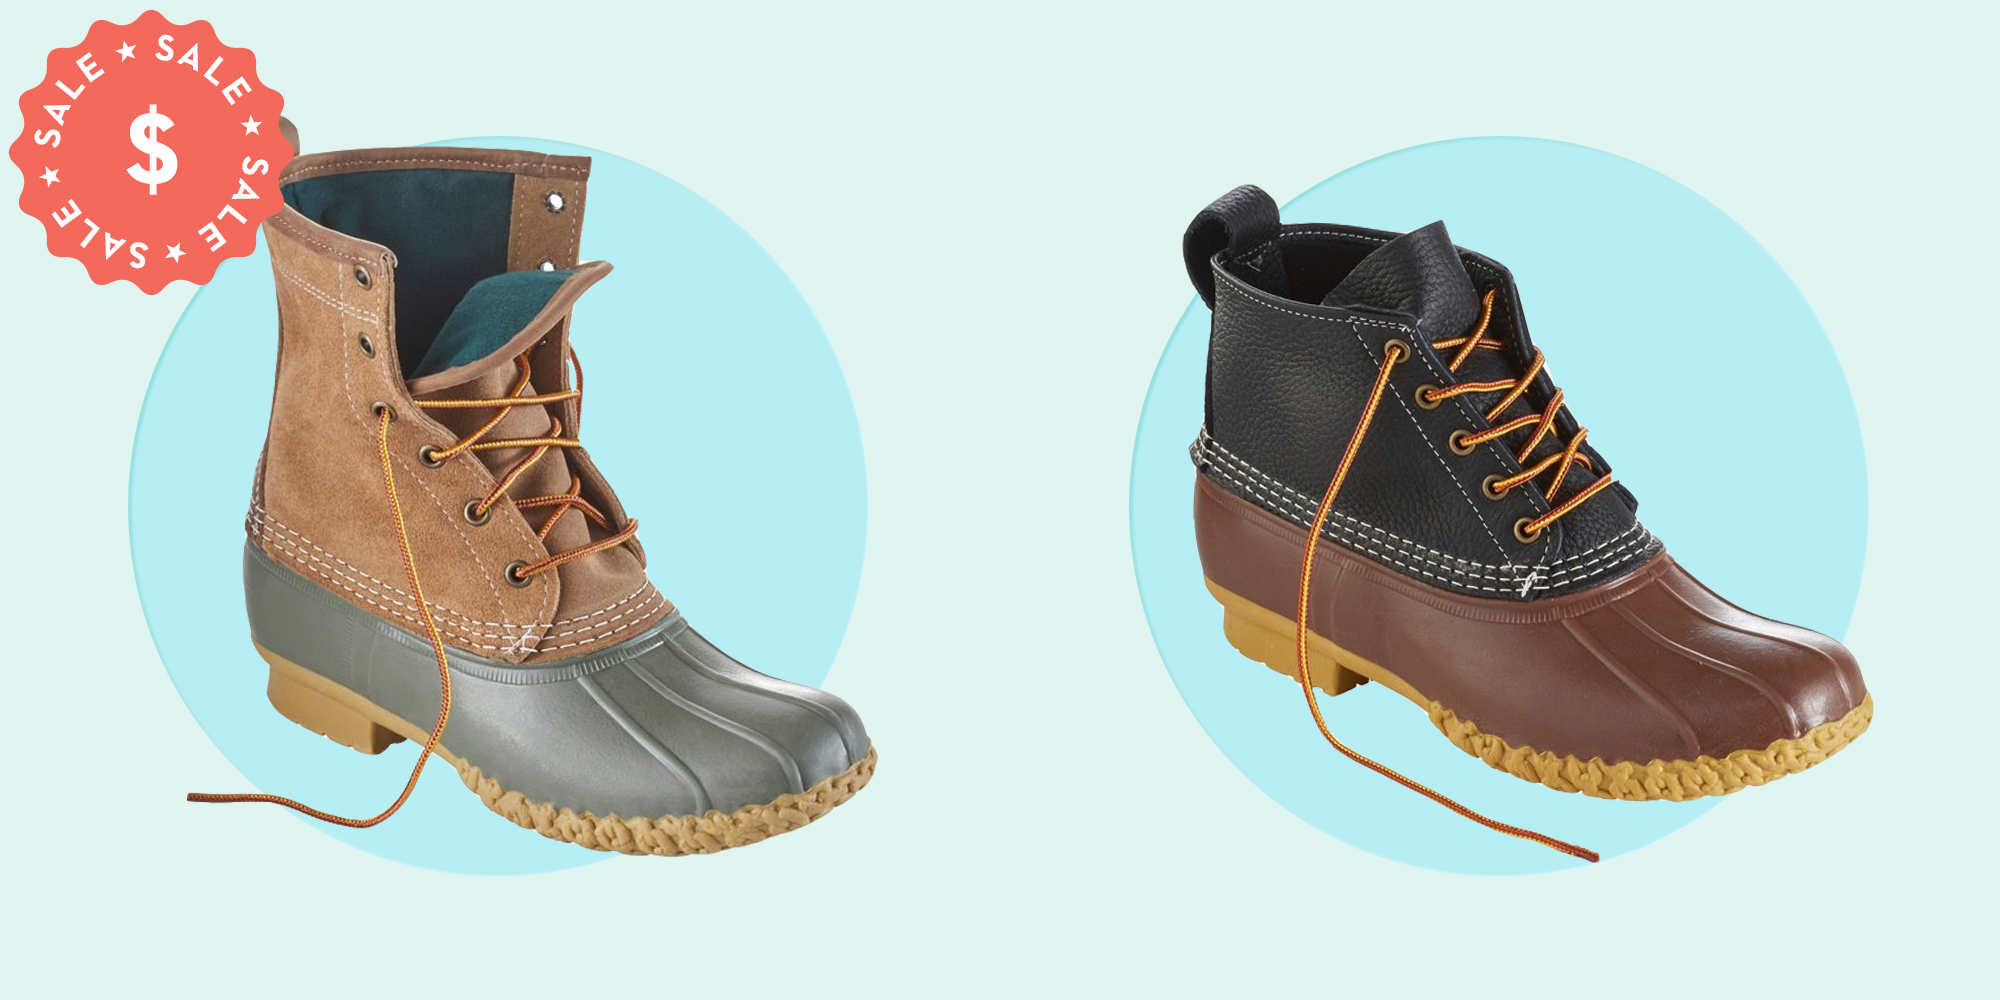 Summer Sale Is Happening and Bean Boots